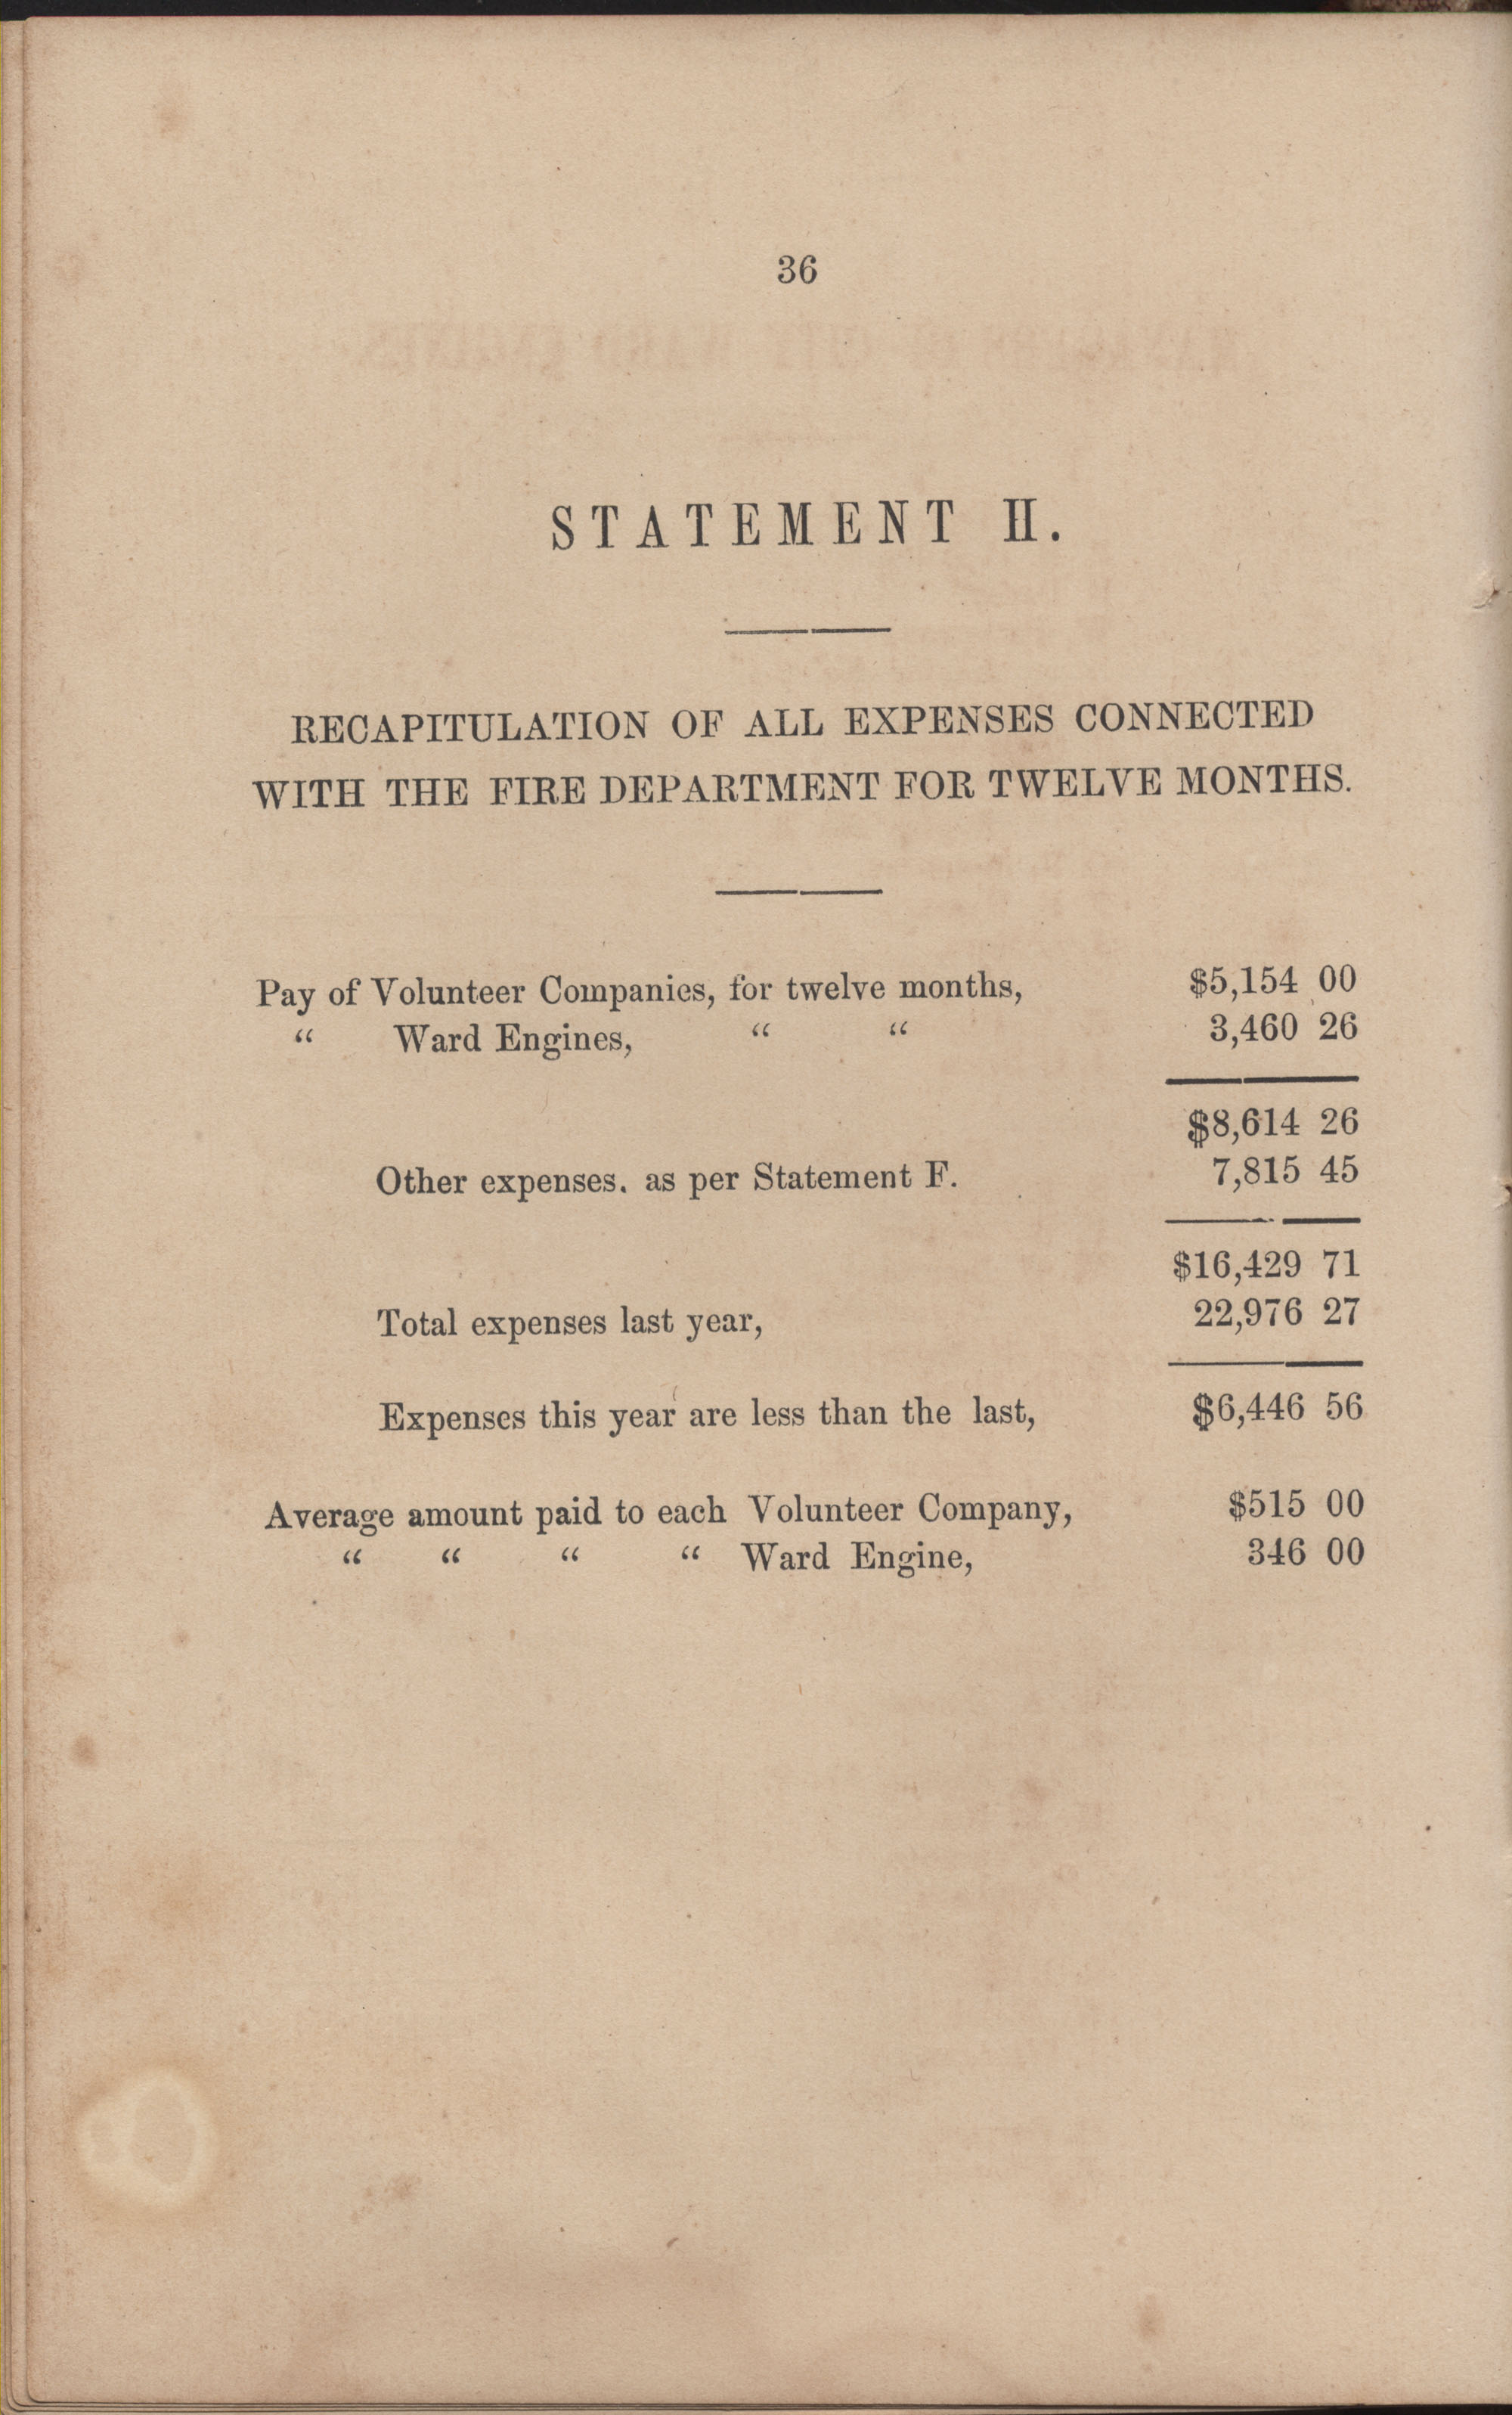 Annual Report of the Chief of the Fire Department of the City of Charleston, page 97